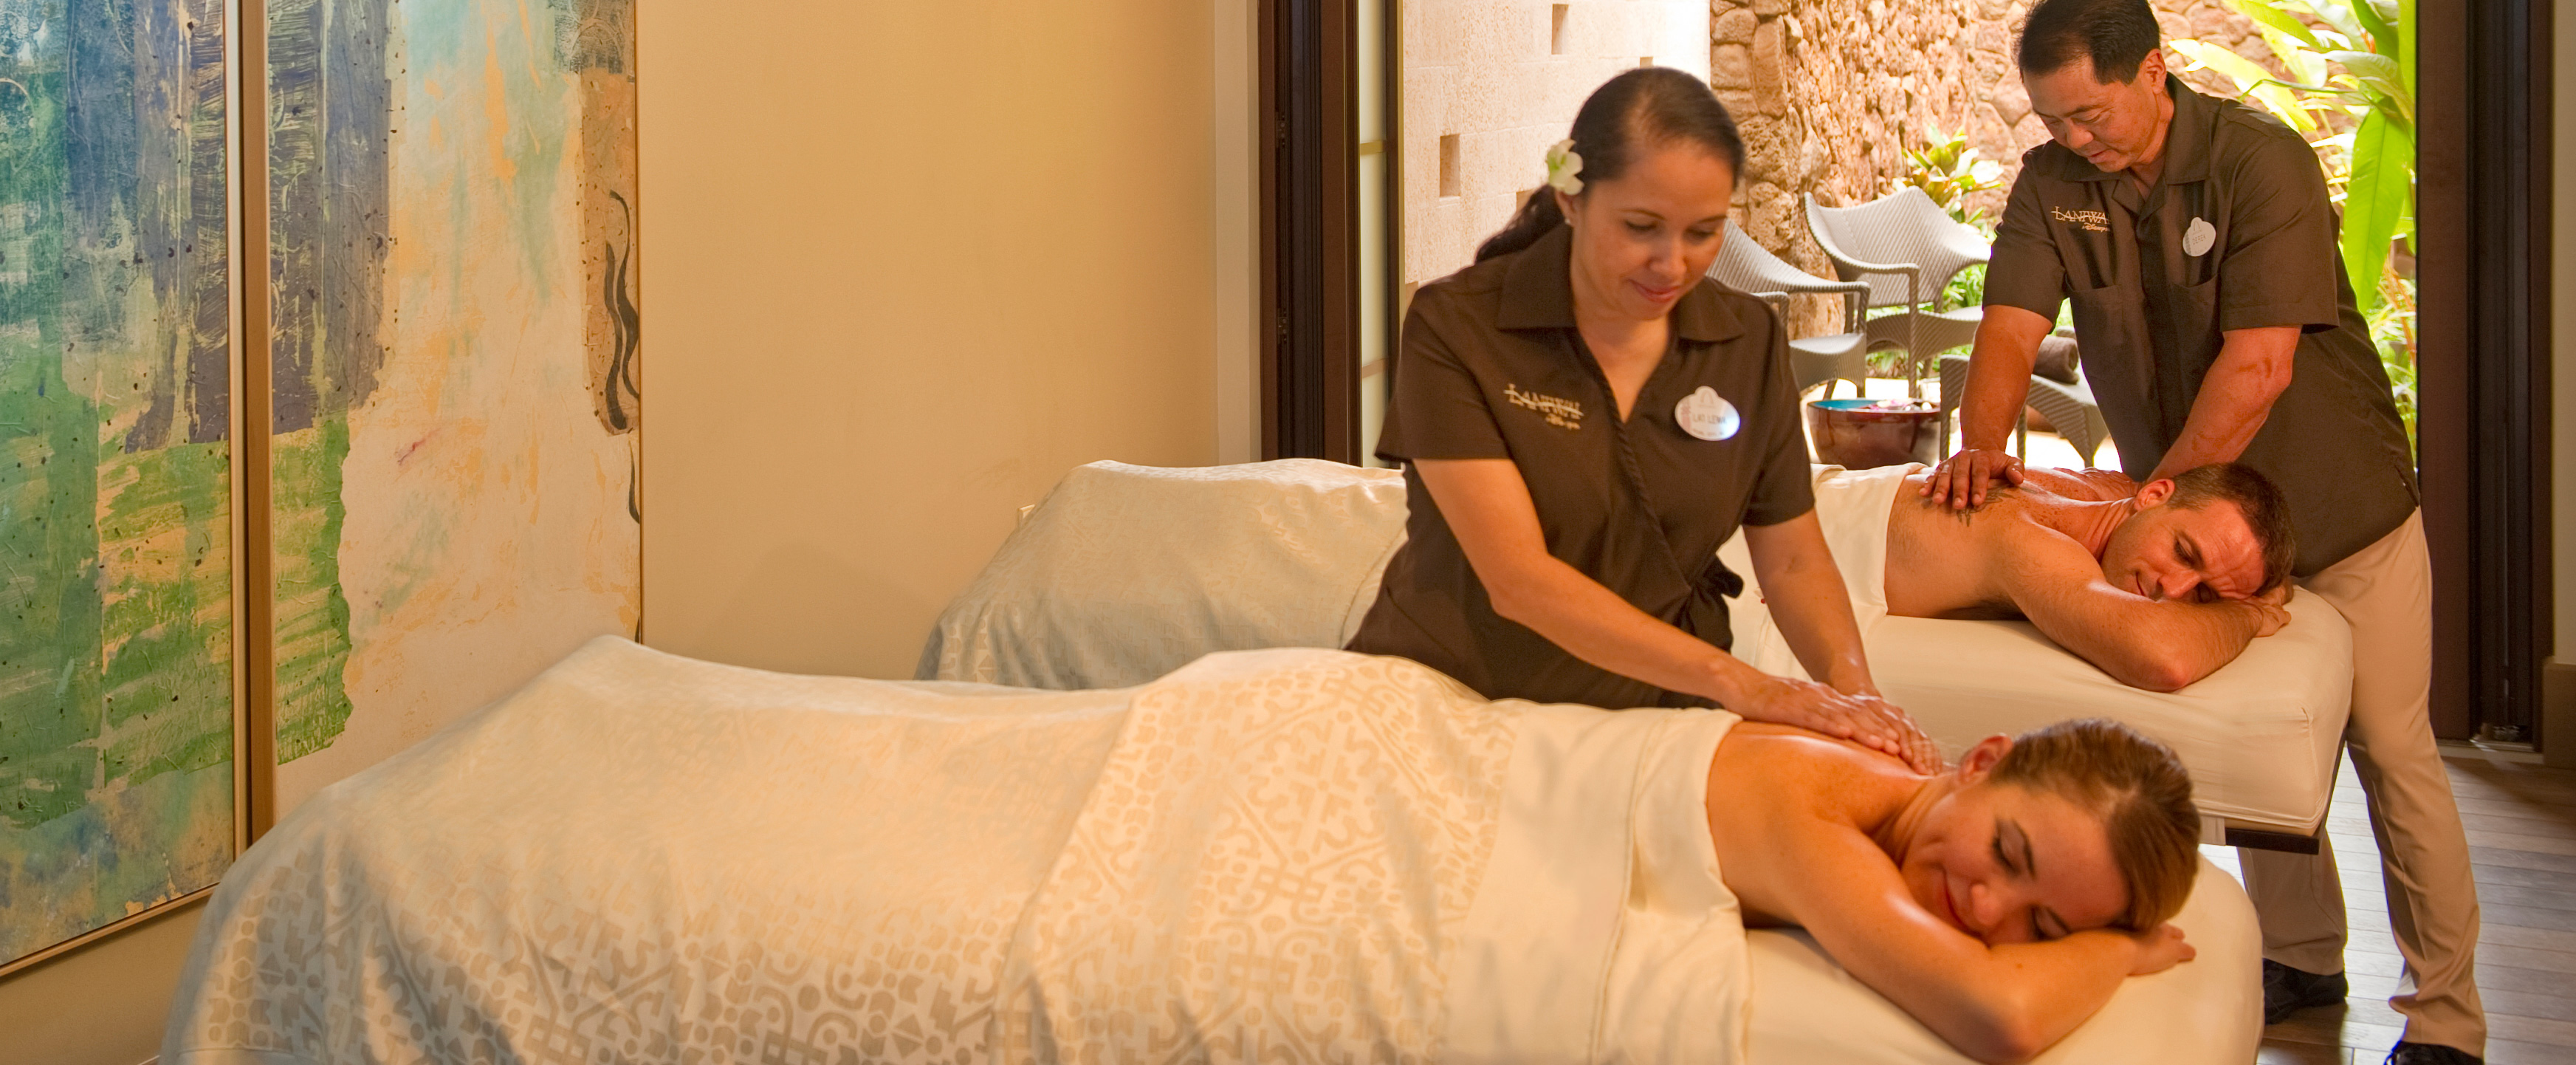 Massage Therapy Spa Resort